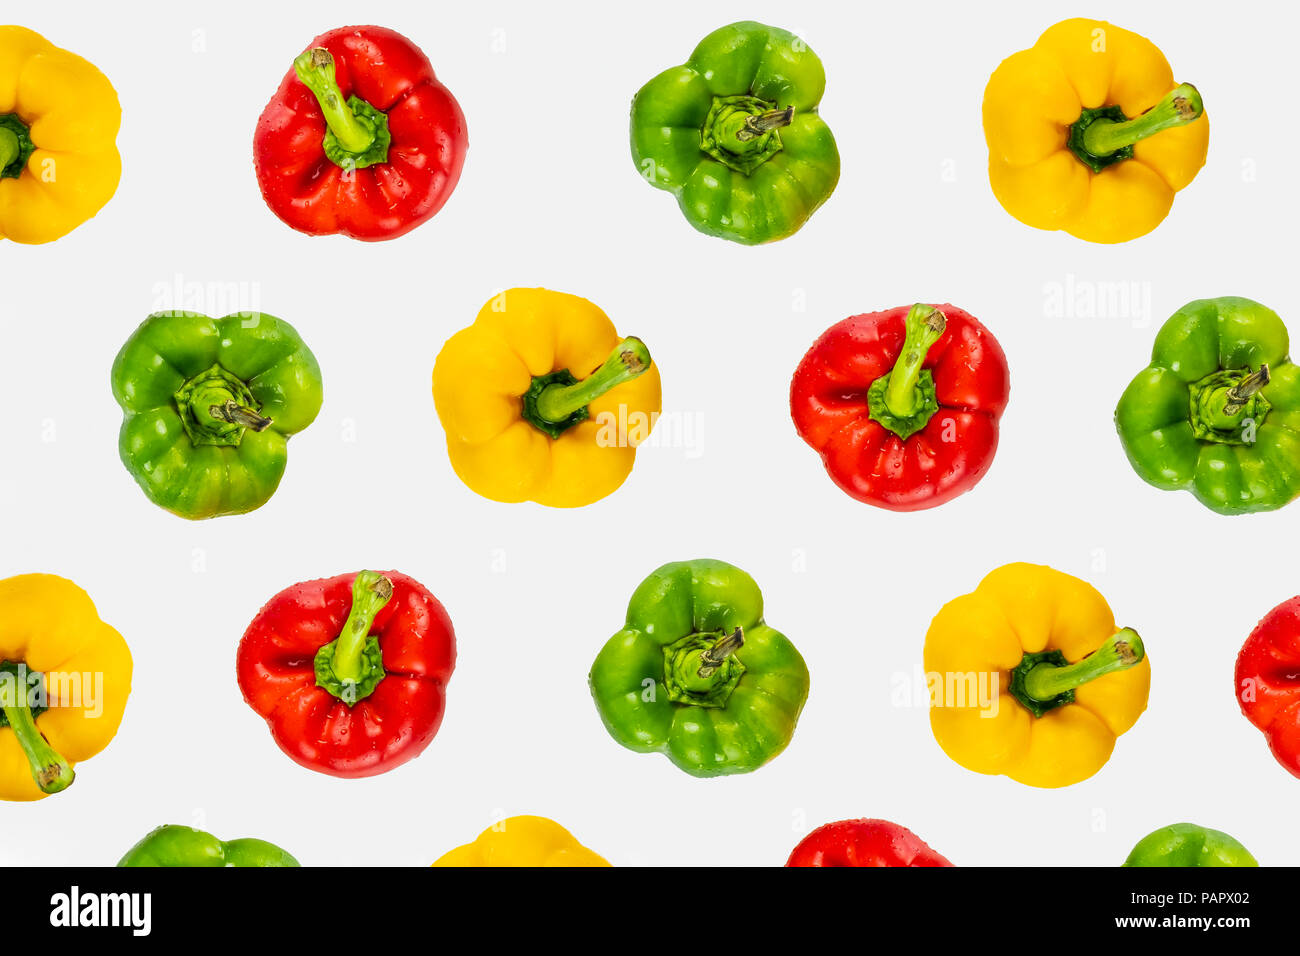 Top view pattern of fresh bright bell peppers on white background. Shot from above of multiple colorful paprika vegetables - Stock Image